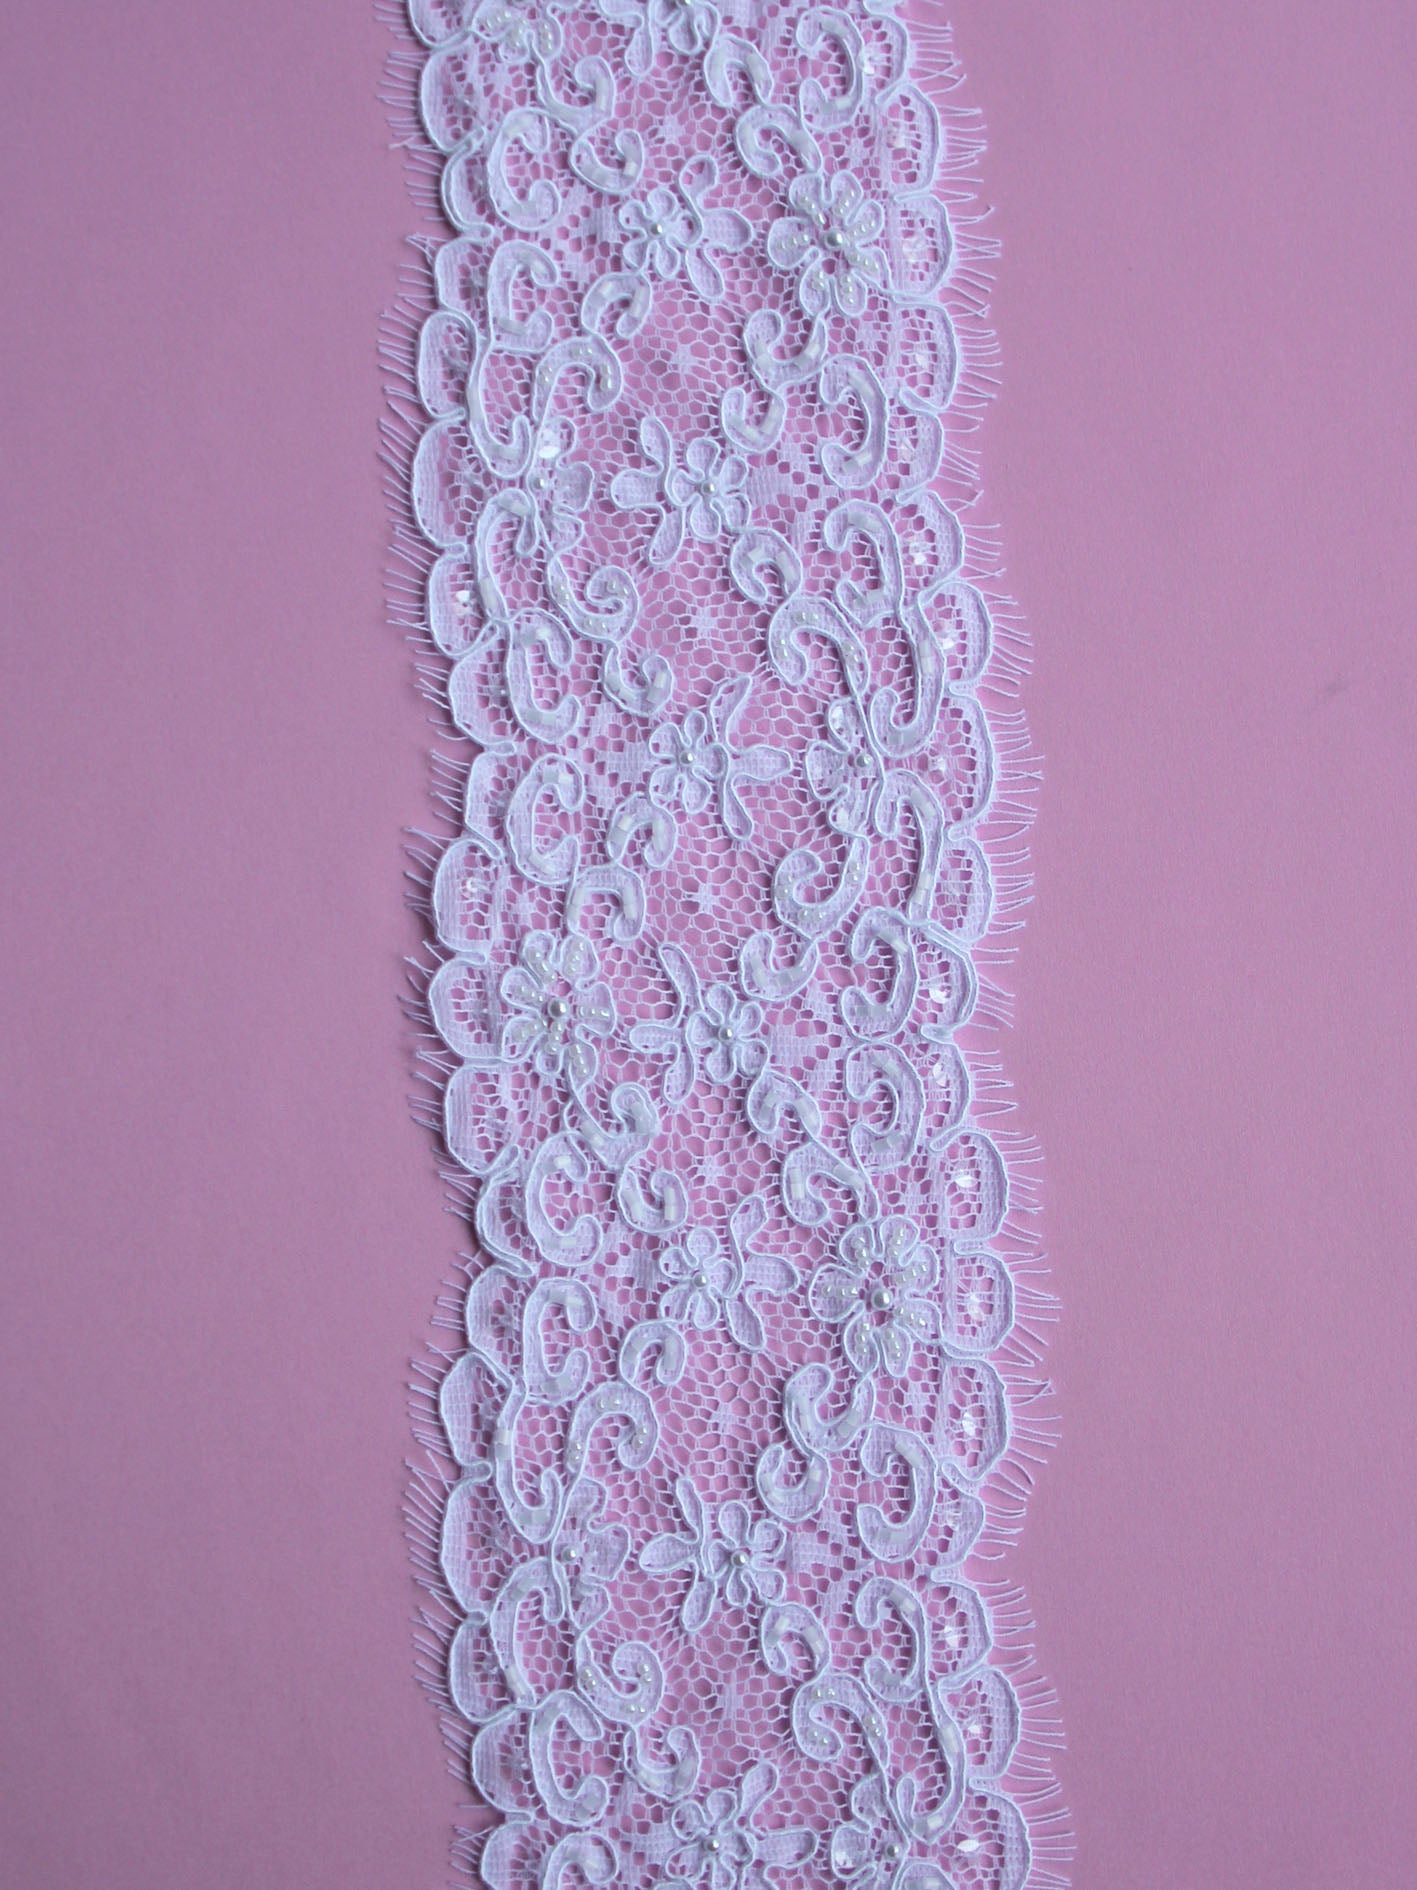 White Corded and Beaded Lace Trim - Heidi